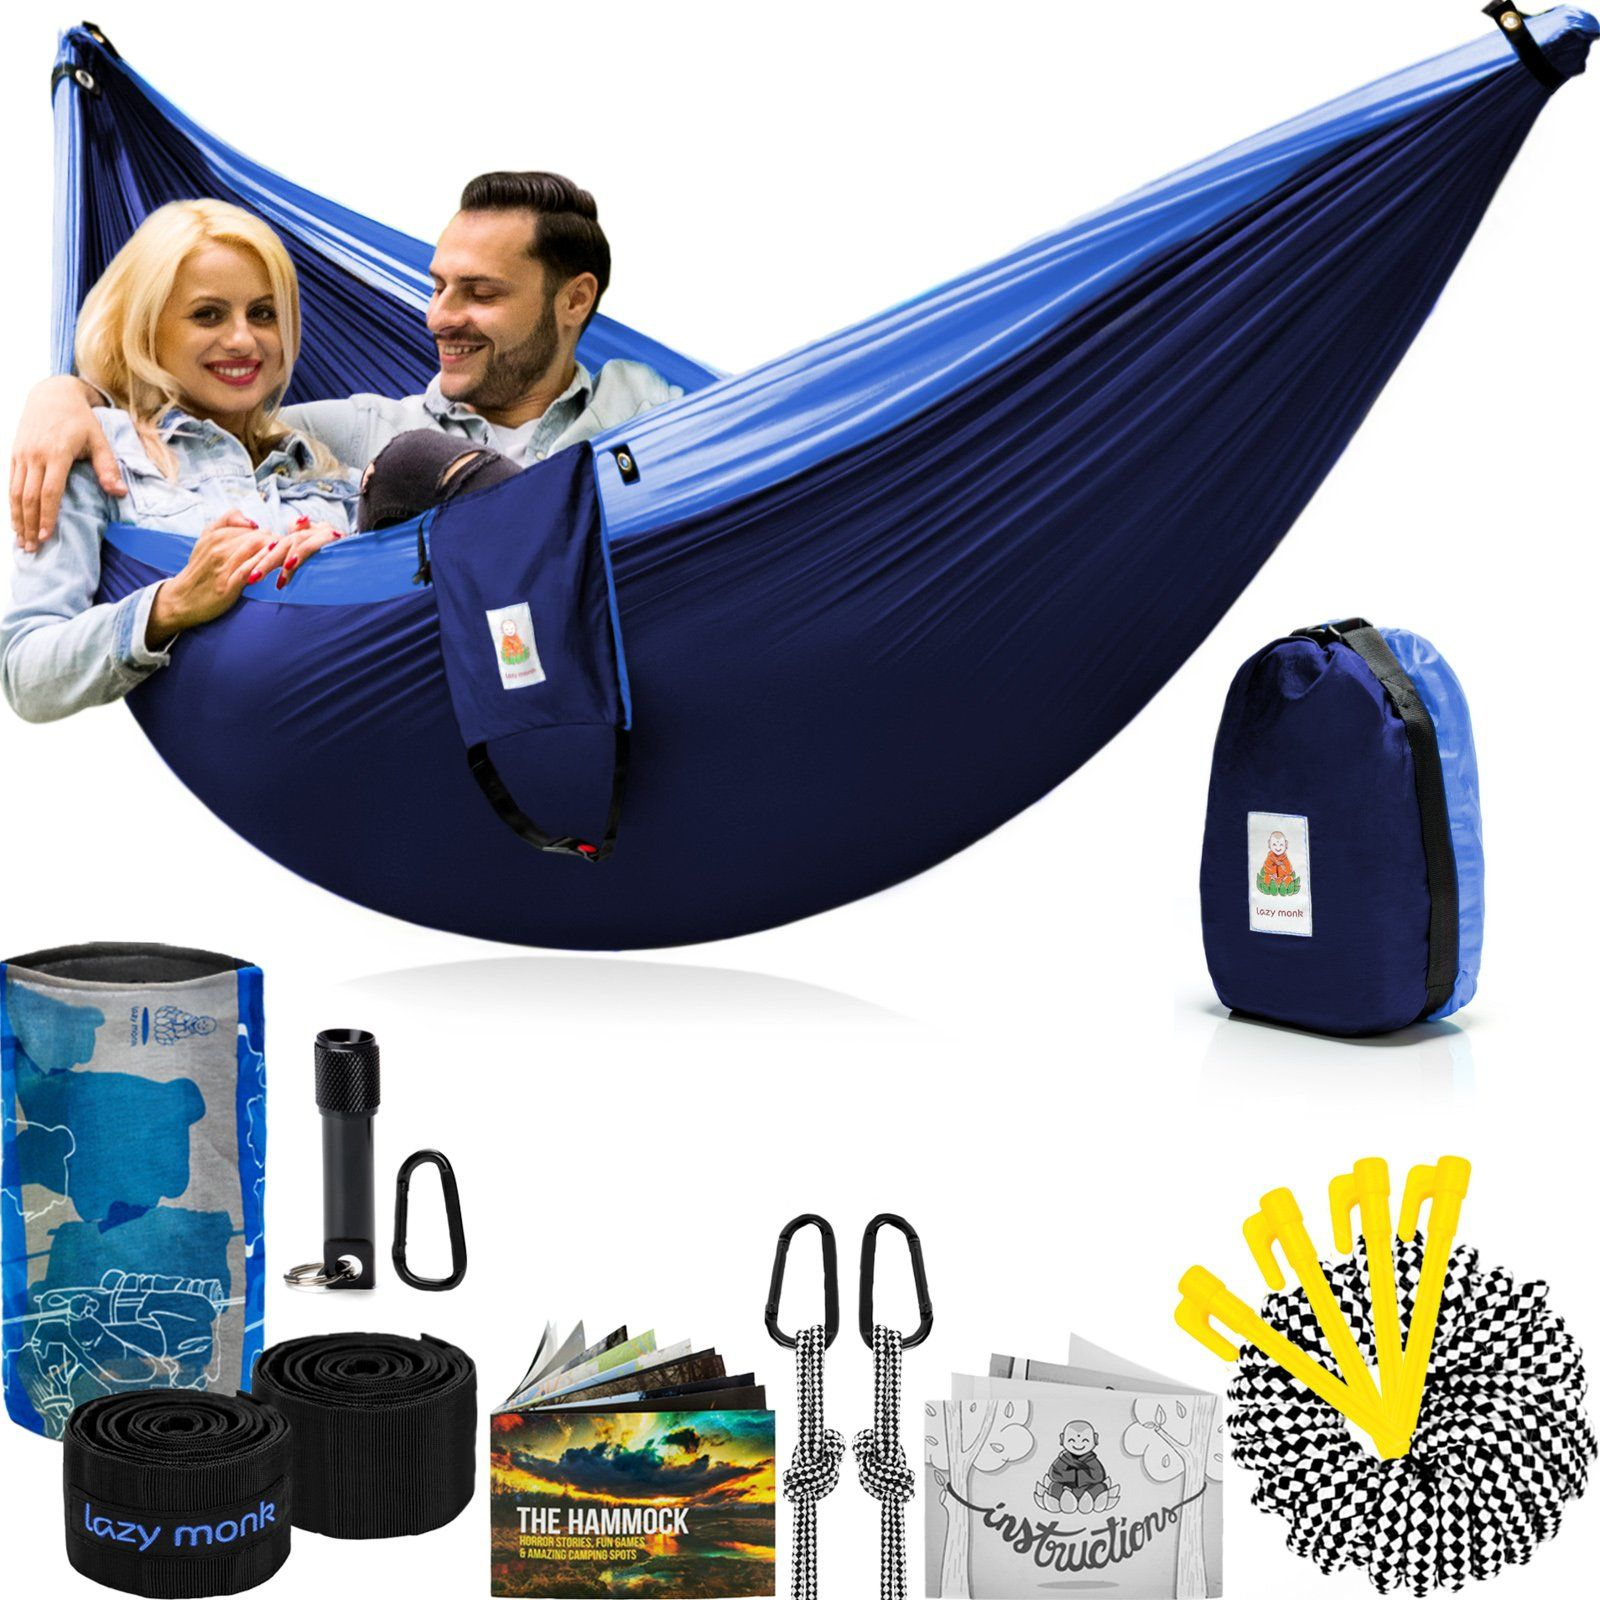 hero wid hei comfortsmart airbed tent portable cots furniture cot suspension deluxe hammock coleman